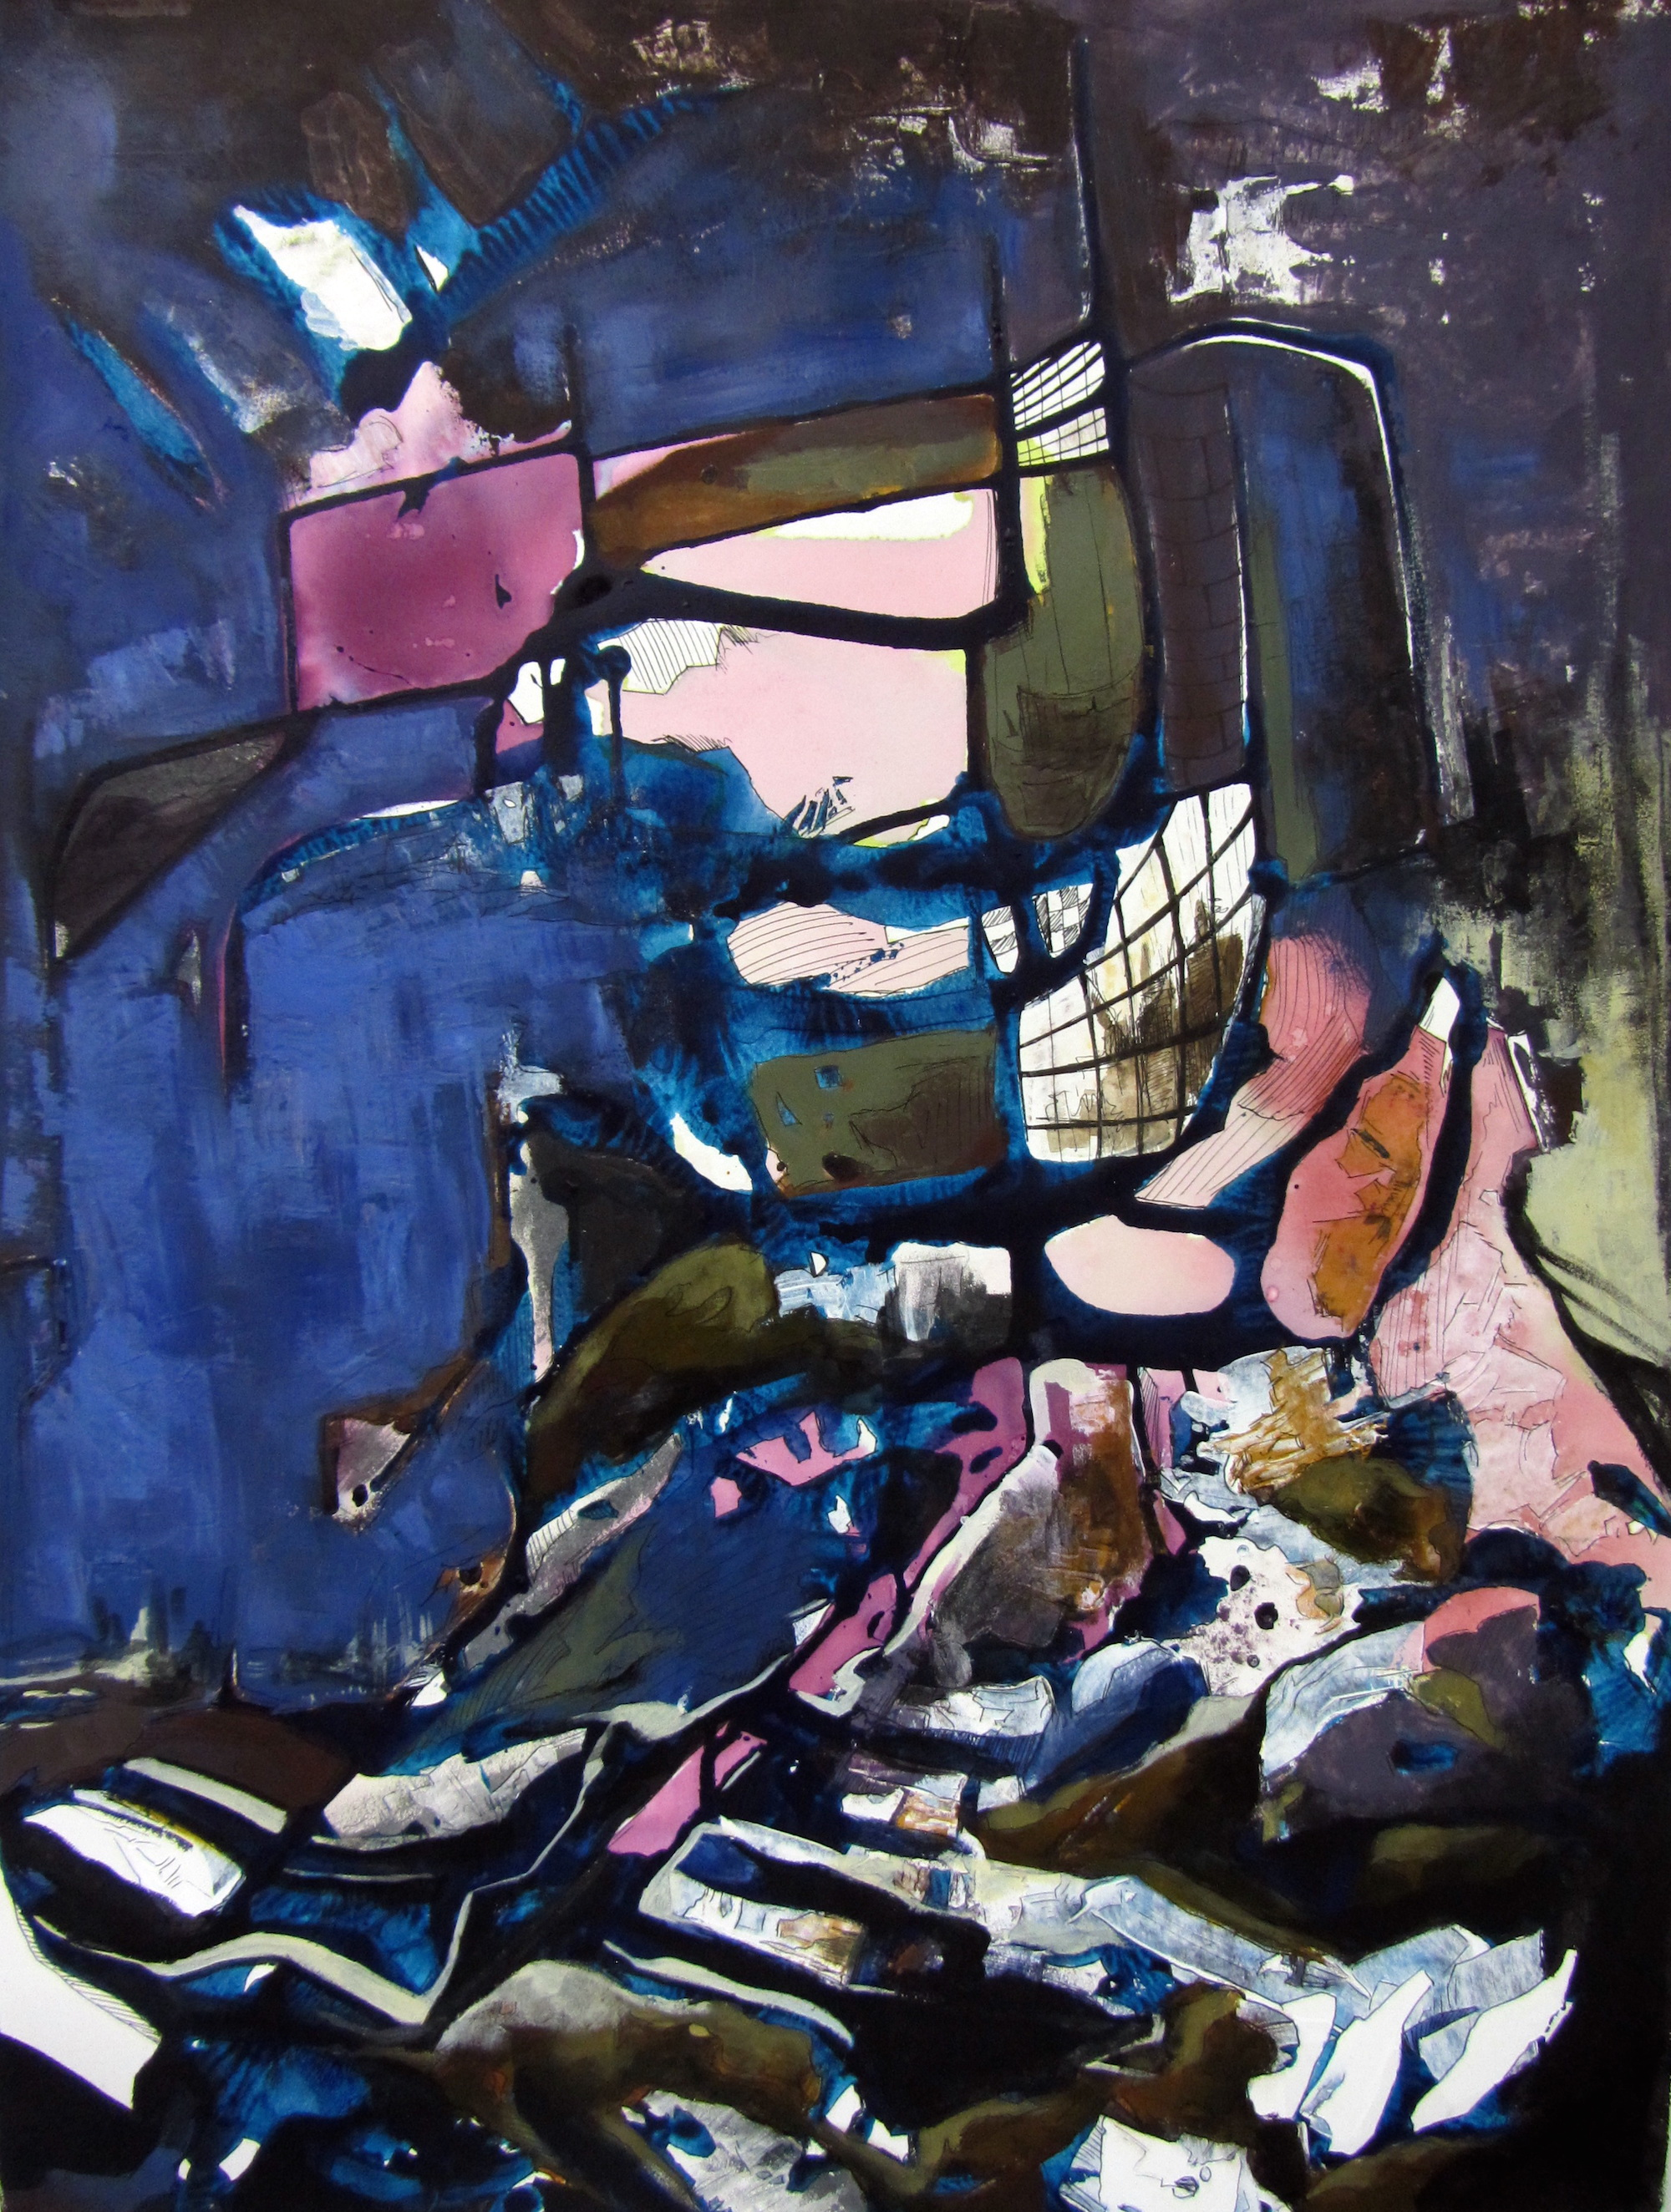 Deconstructed City, acrylic on paper, 36.5x29 inches, 2013